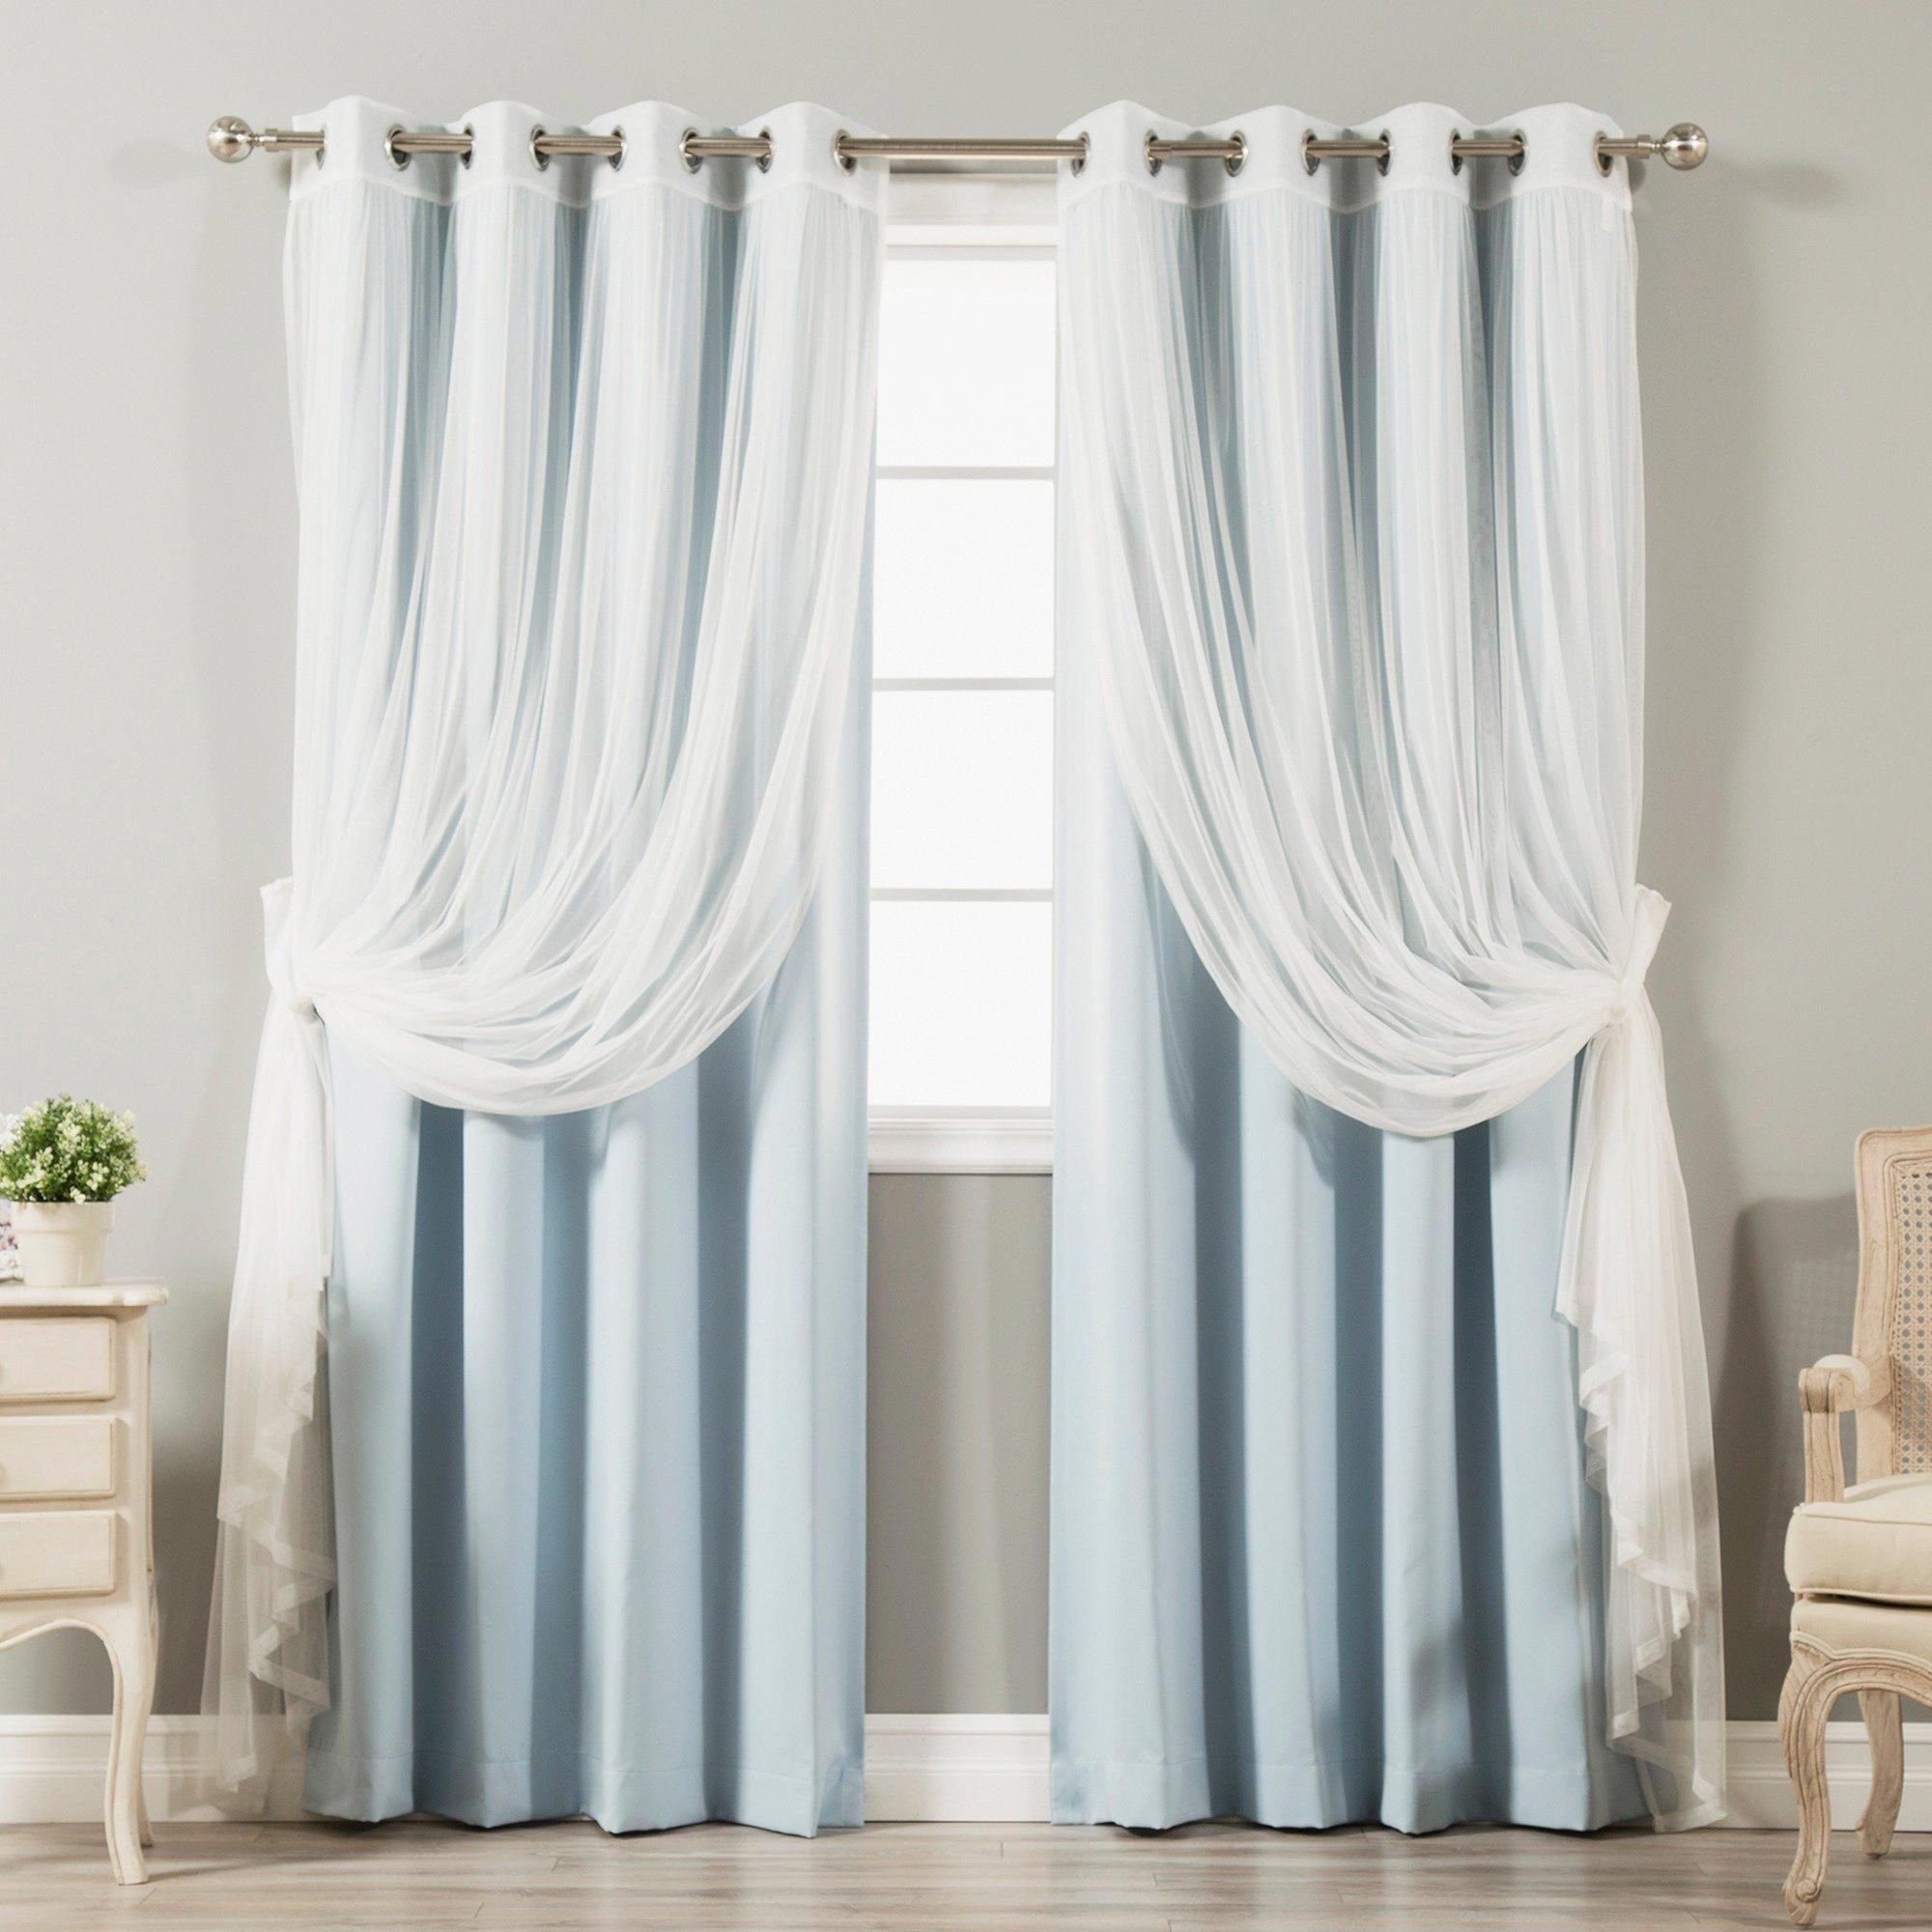 Aurora Home Mix And Match Blackout Tulle Lace Sheer 4 Piece For Mix And Match Blackout Tulle Lace Sheer Curtain Panel Sets (View 15 of 20)